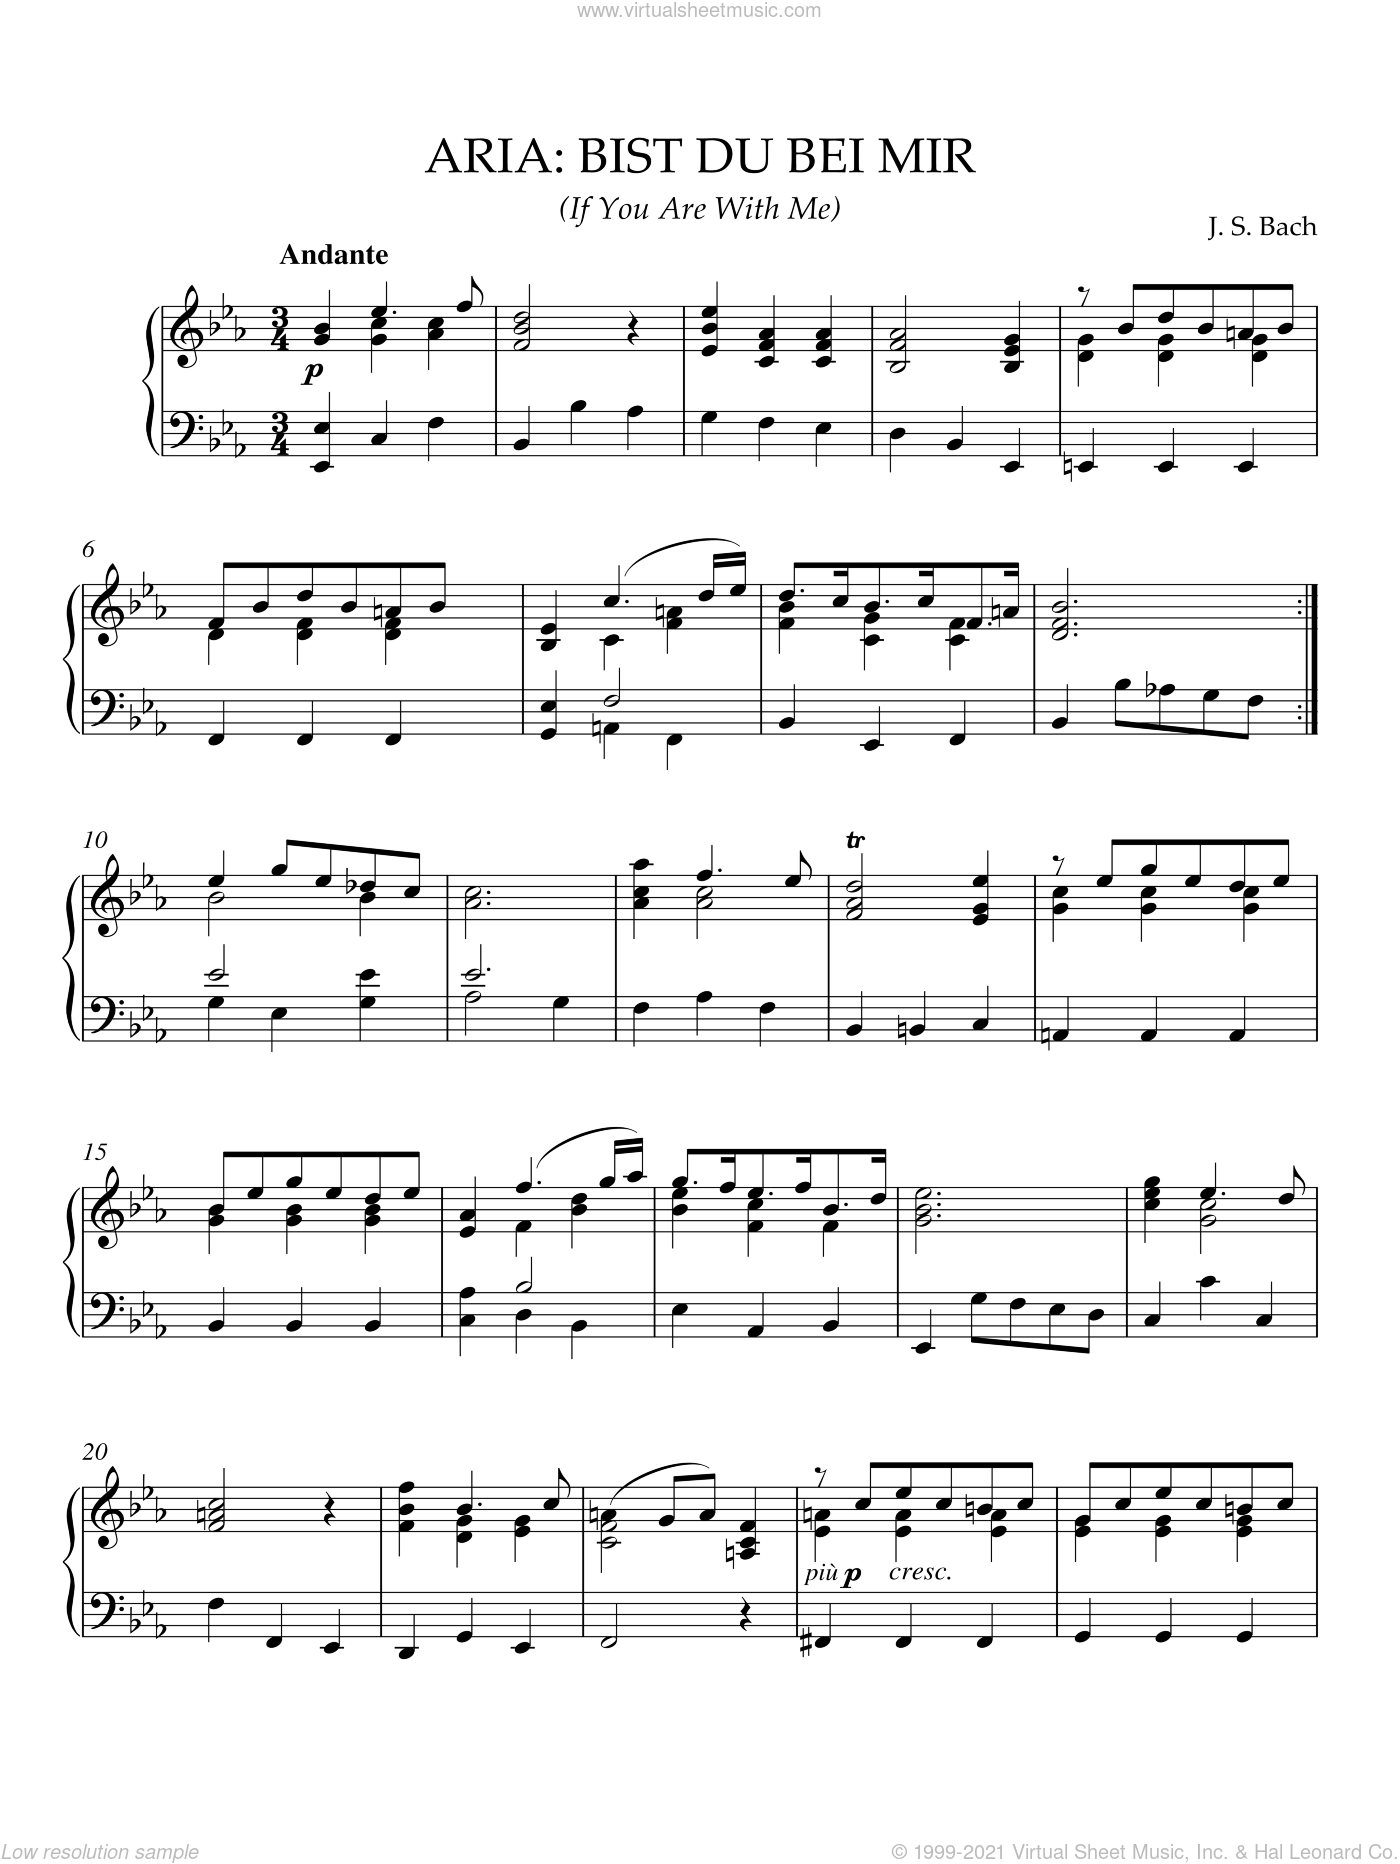 Bist Du Bei Mir (If You Are With Me) sheet music for piano solo by Johann Sebastian Bach. Score Image Preview.